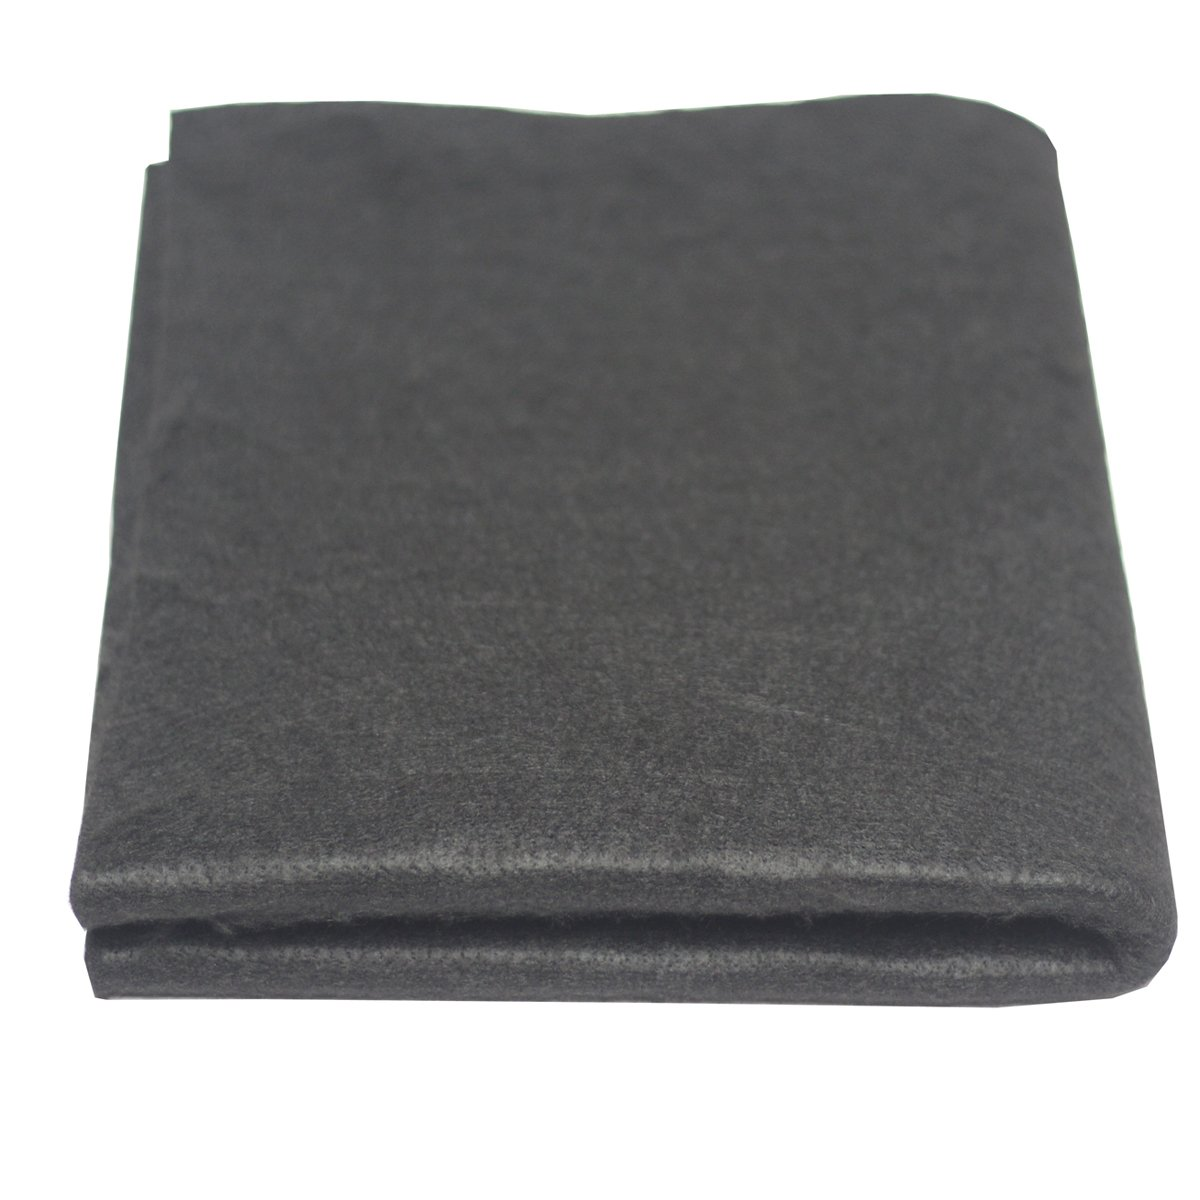 High Temp 18'' X 24''(WL) x1/8'' Carbon Fiber Welding Blanket Protect Work Area from Sparks & Splatte (18 x 24 inches)